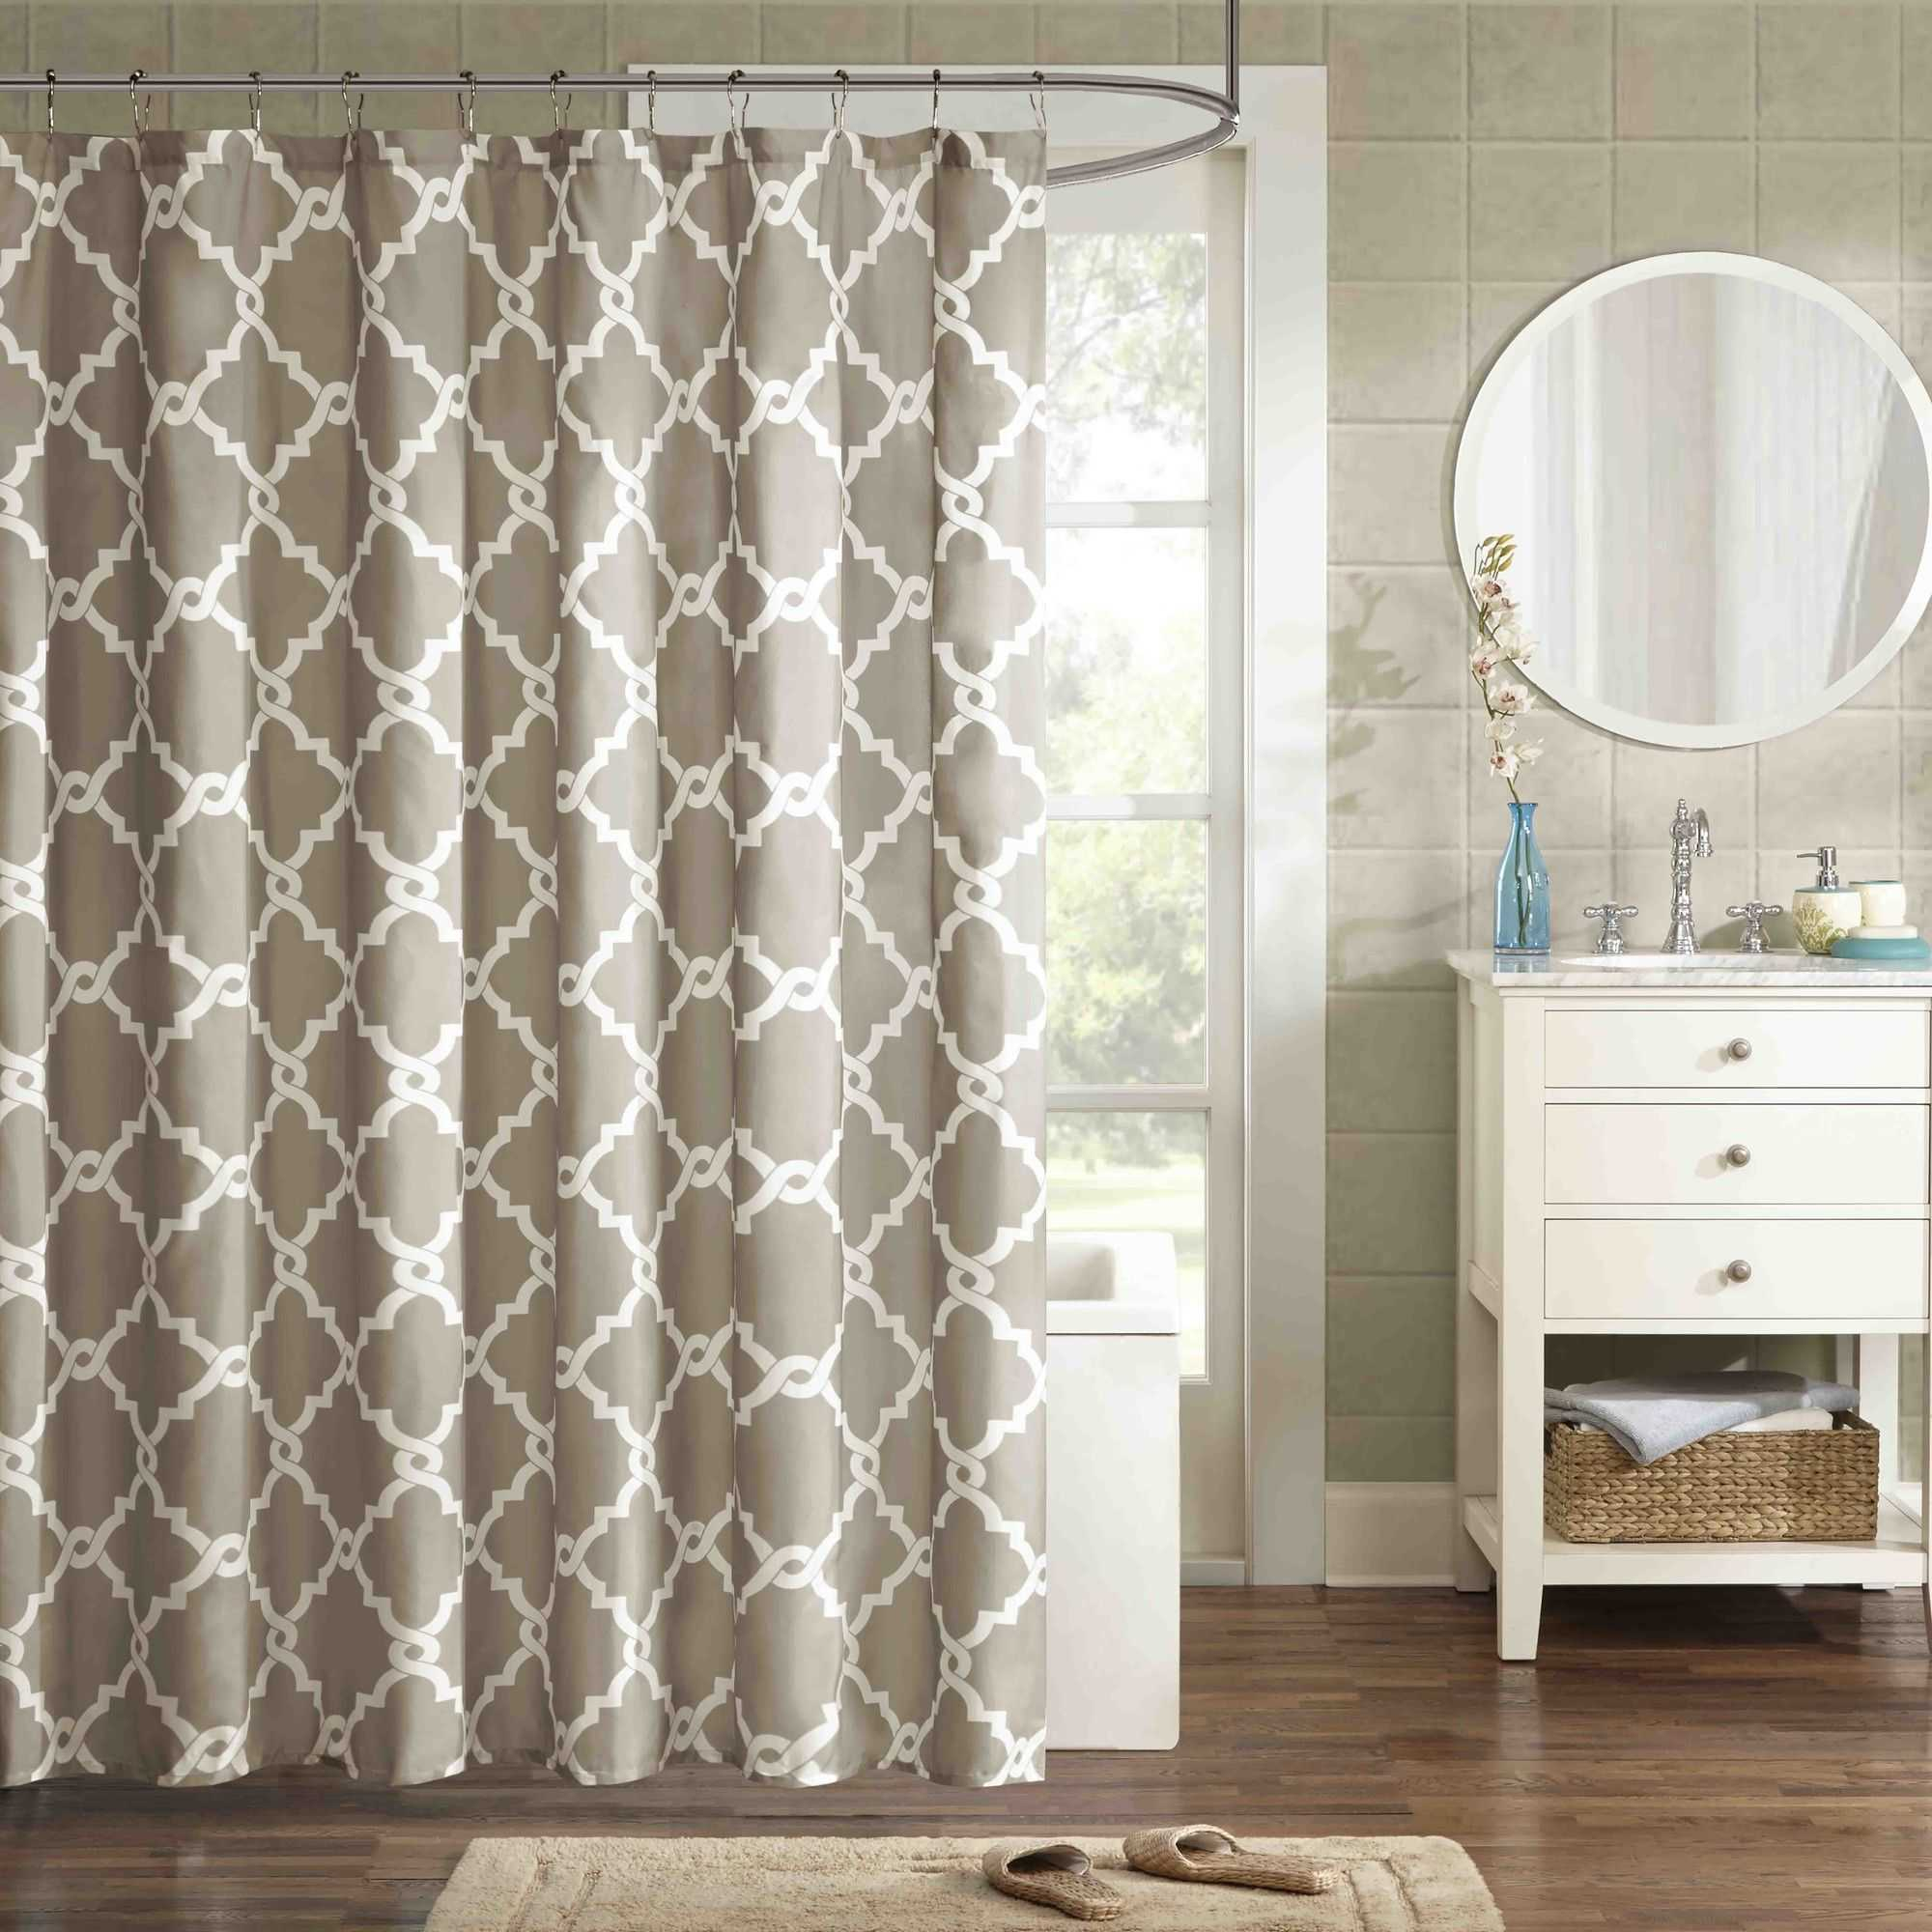 at curtain with long size of rail accessories also walmart matching plus shower window curtains and sets bathrooms bathroom full together